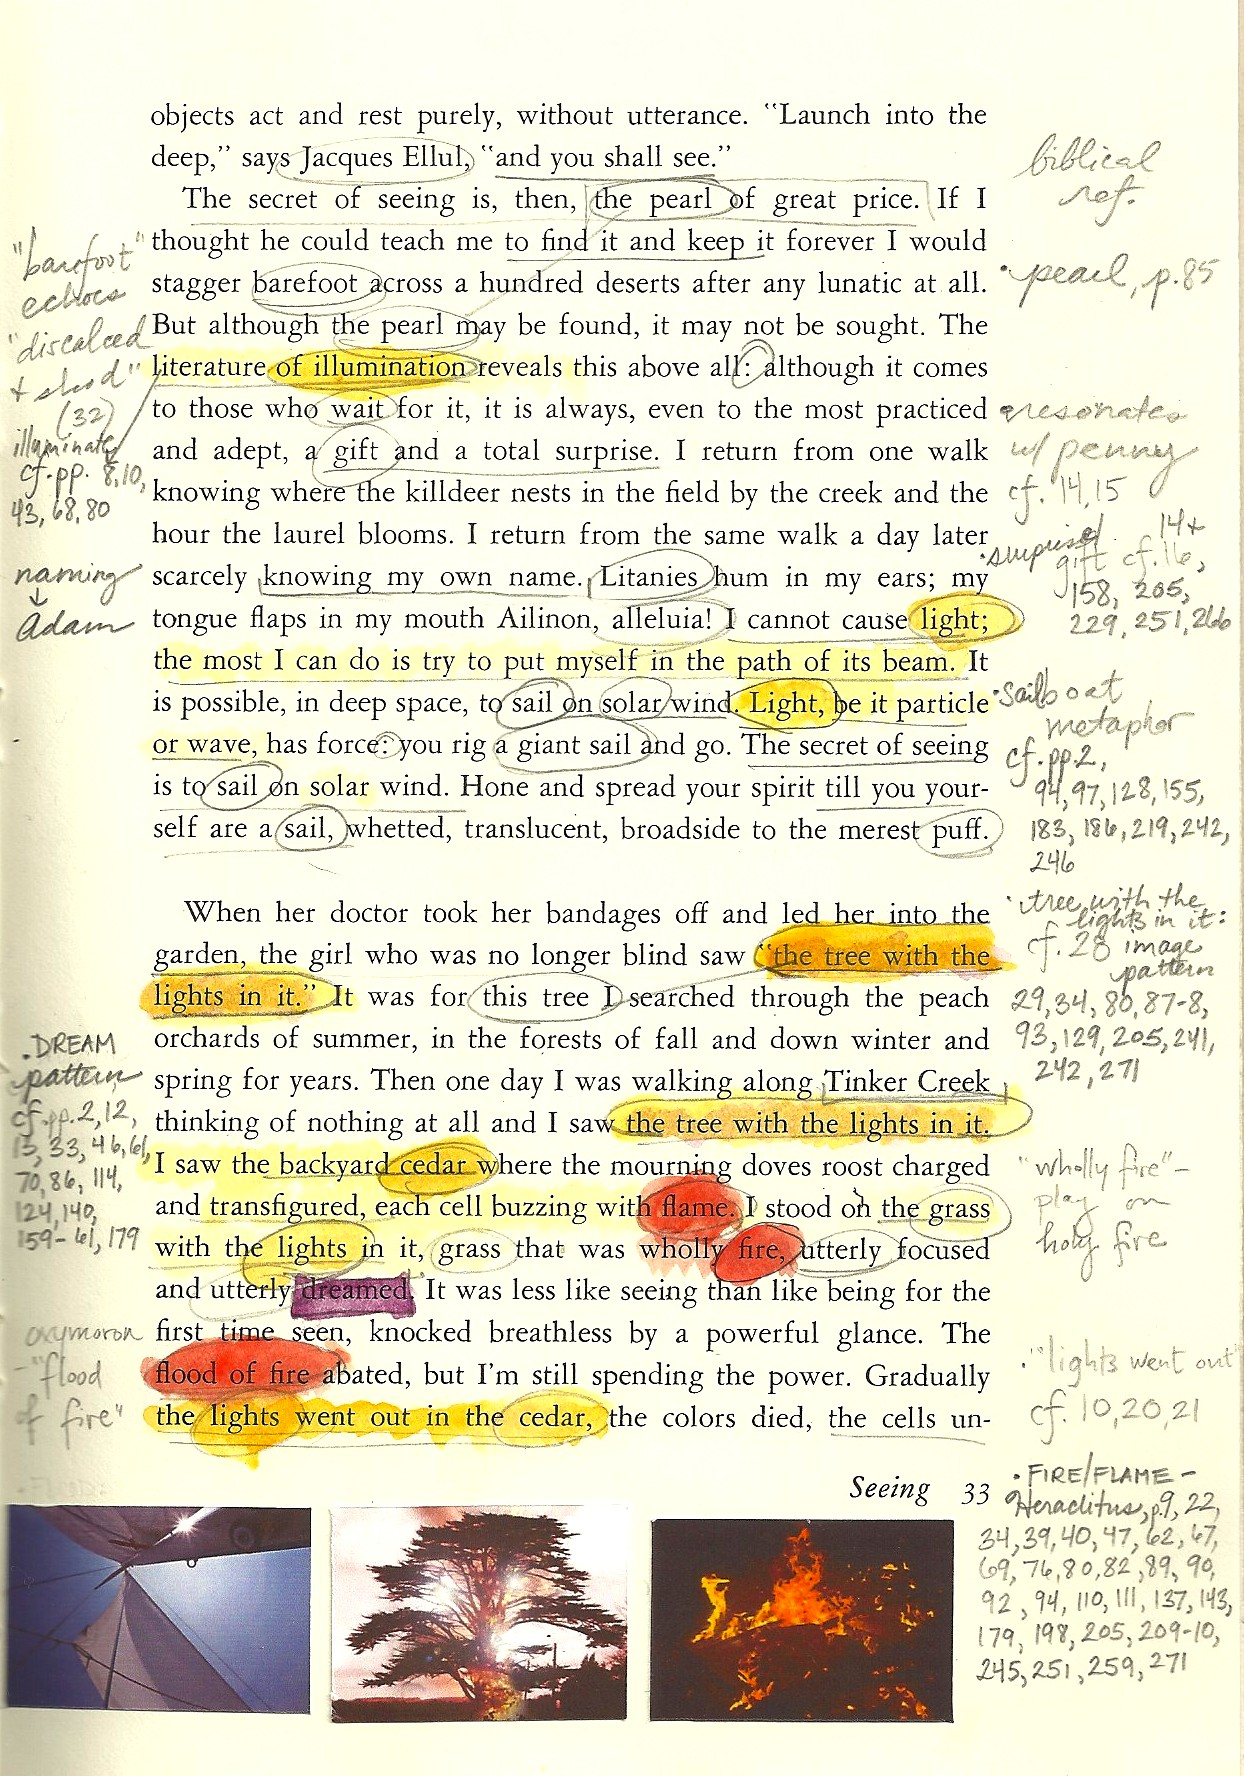 annie dillard seeing summary essay This is the life by annie dillard from the fall issue of image: a journal of the arts and religion, published by the center for religious humanism at seattle pacific university dillard's most recent book is for the time being any culture tells you how to live your one and only life: to wit as everyone else does probably.